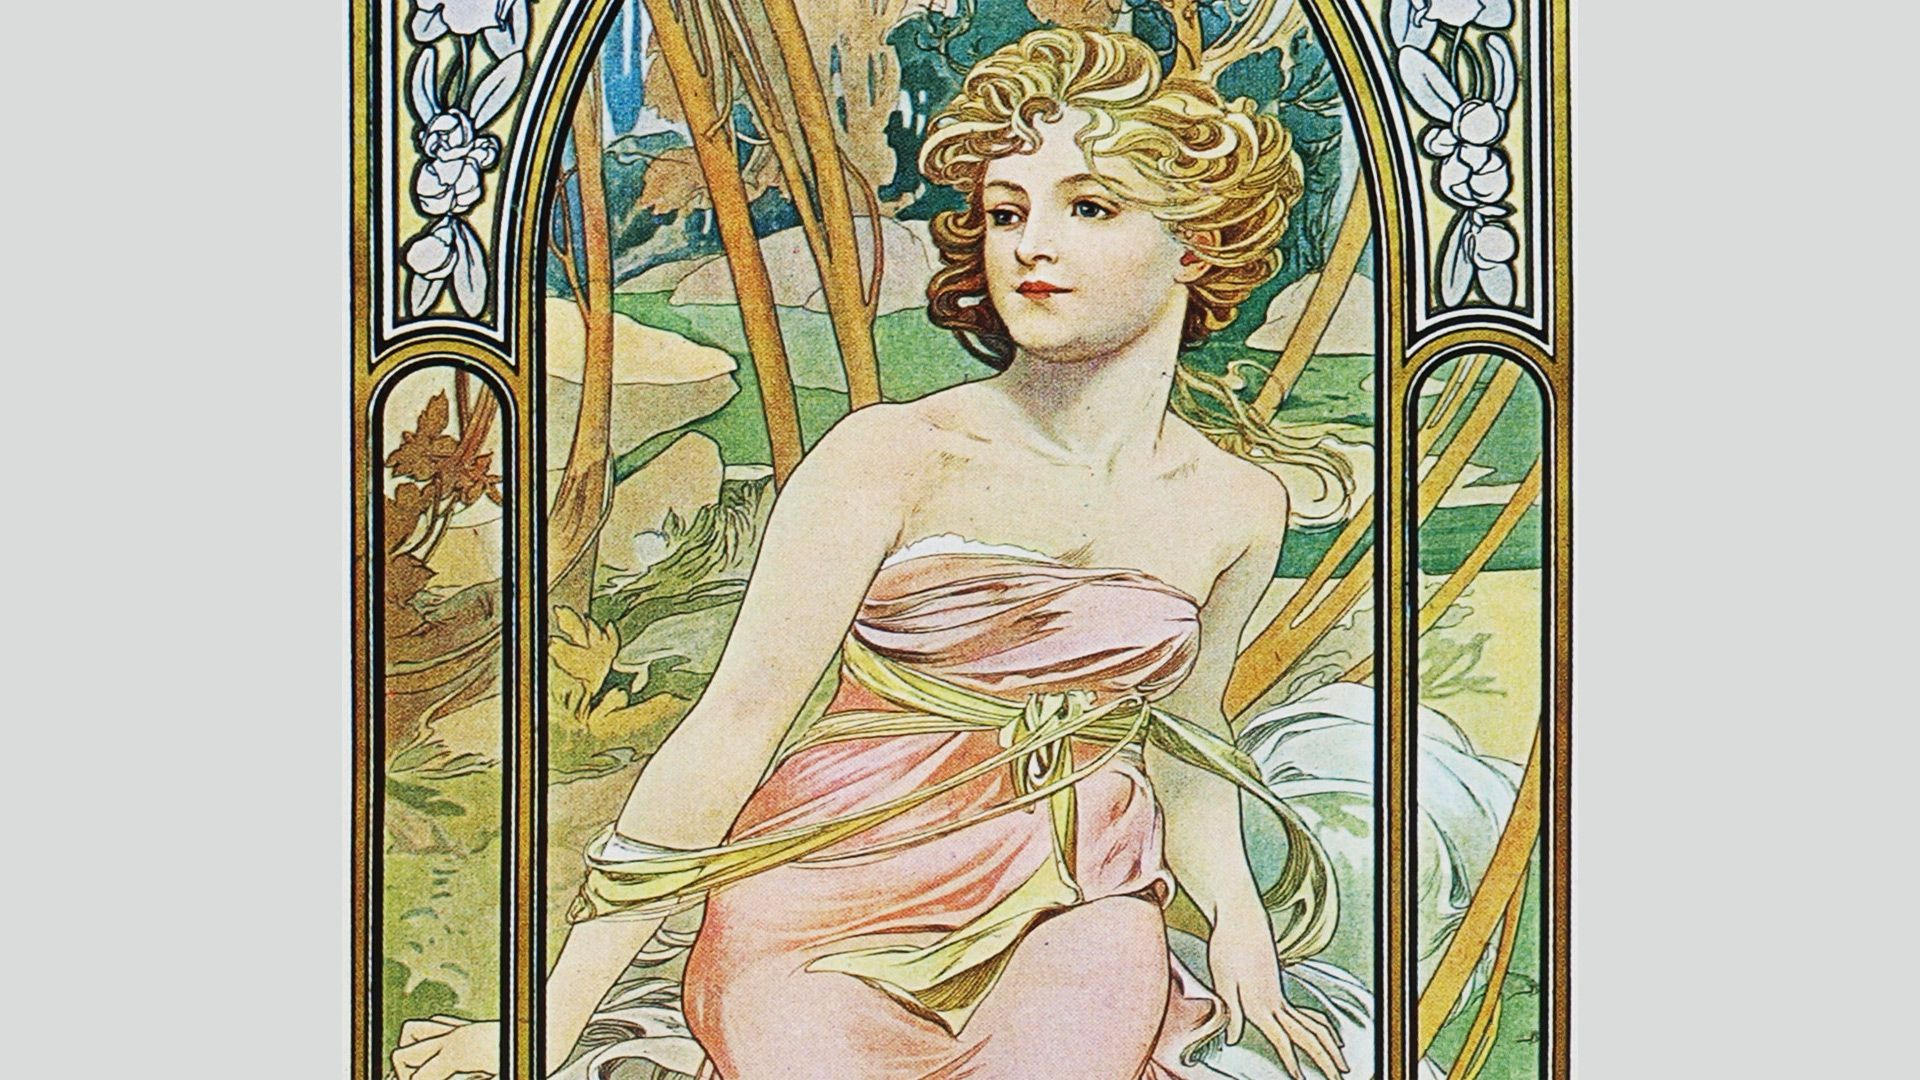 alphonse mucha background full hd wallpaper background photos ...